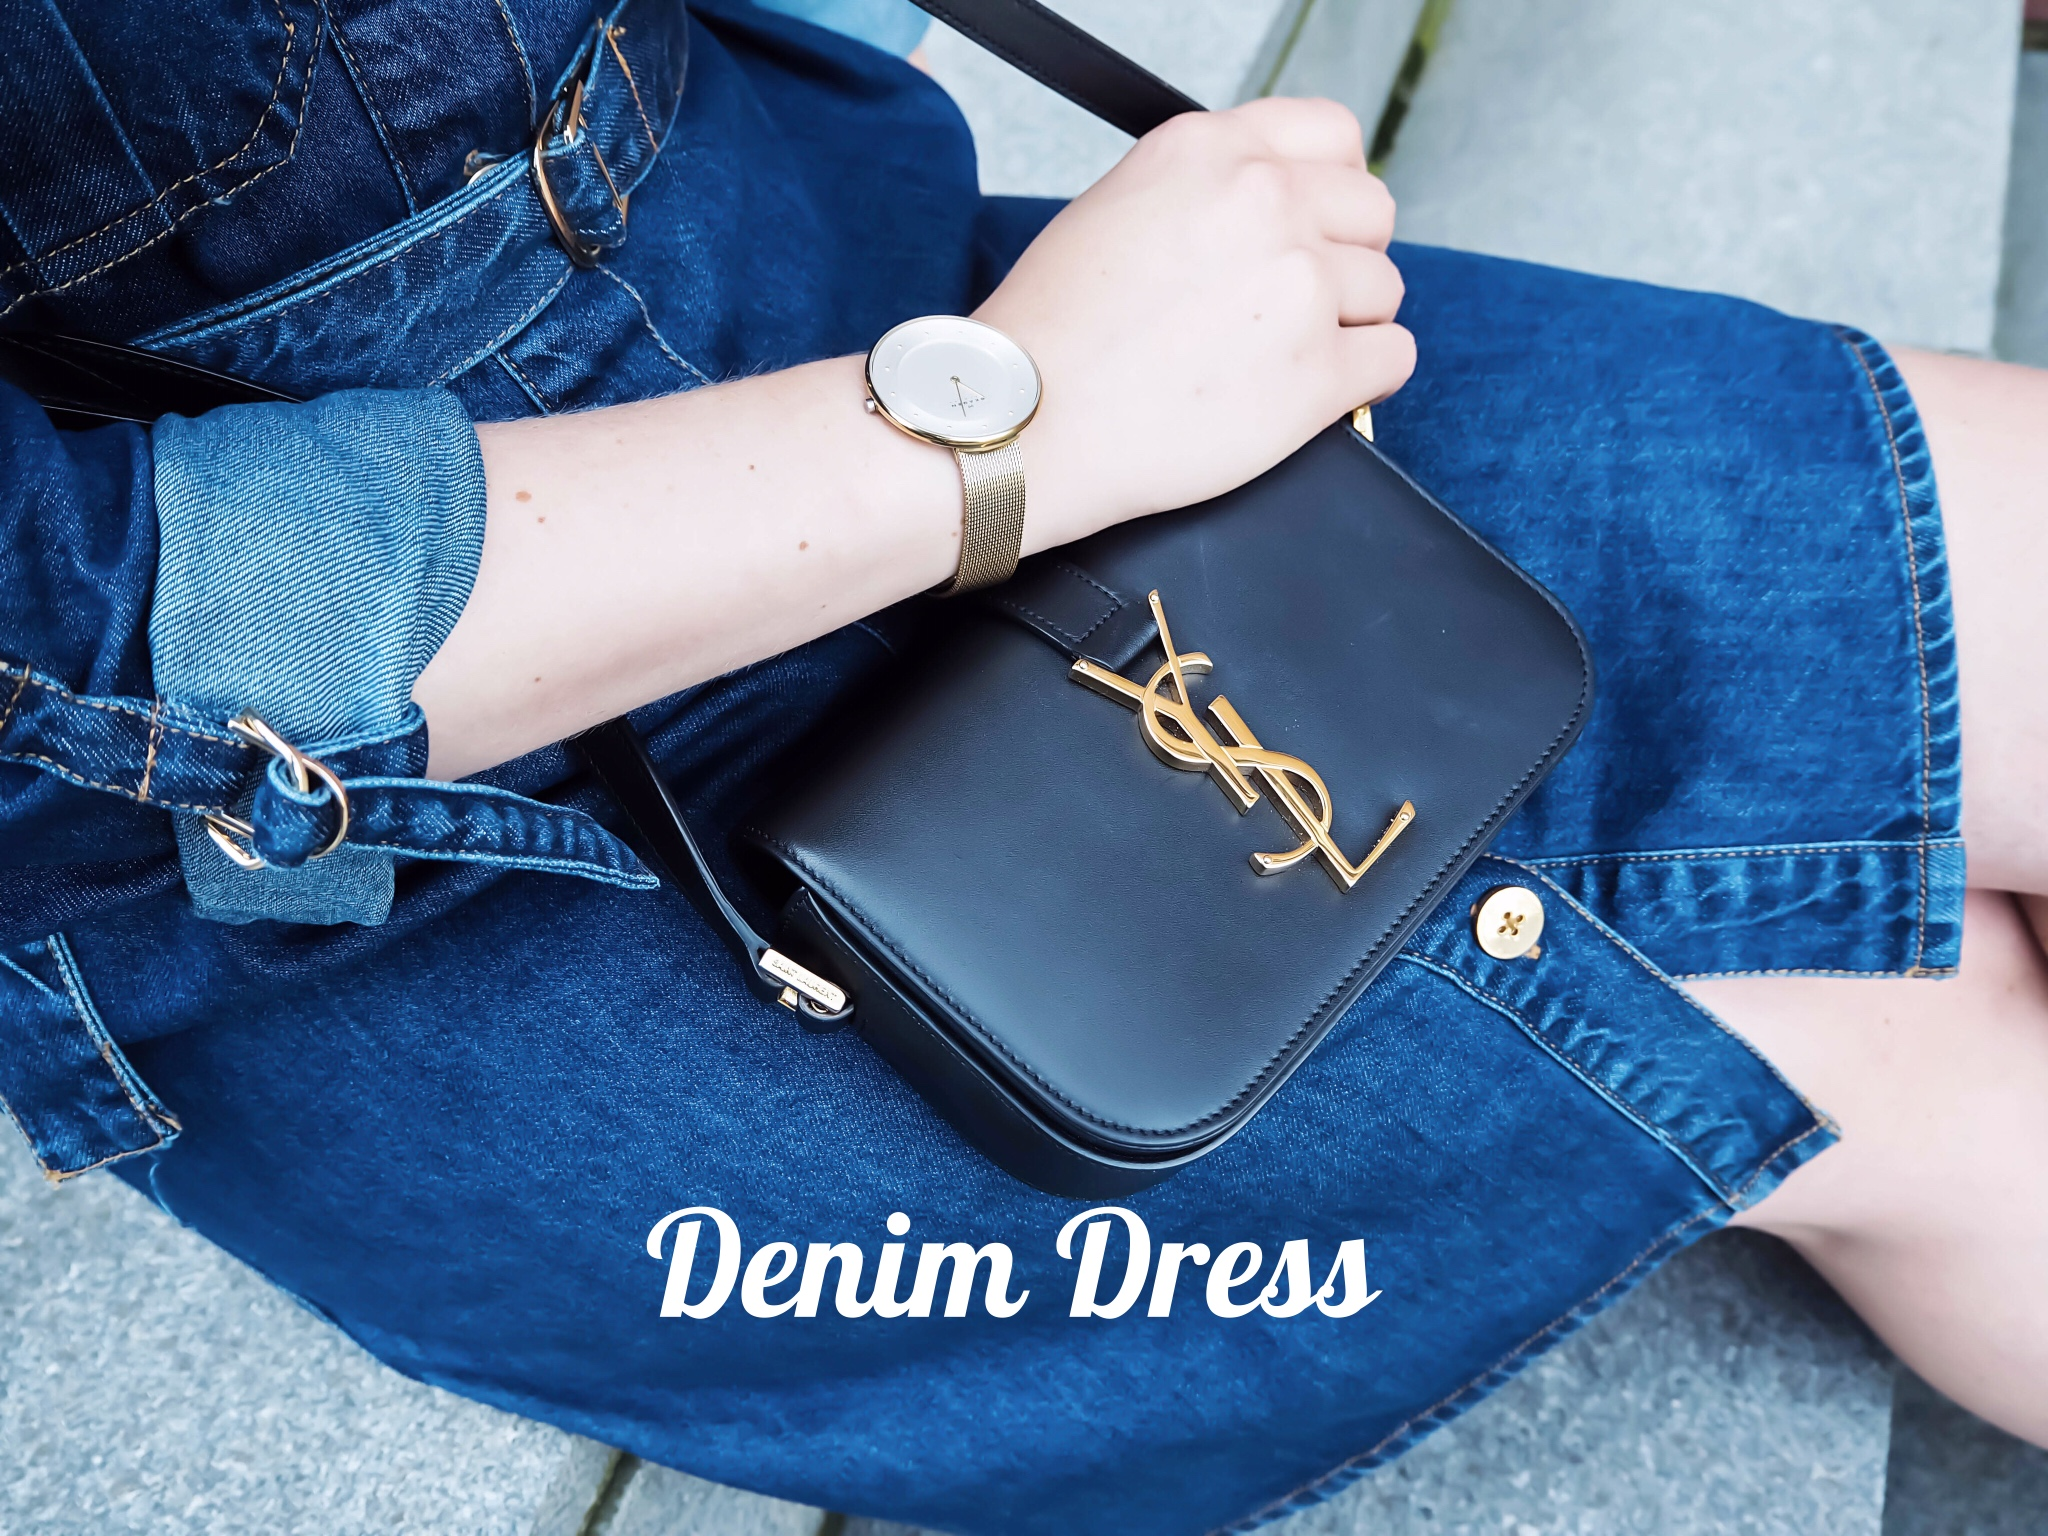 In Love with the denim dress